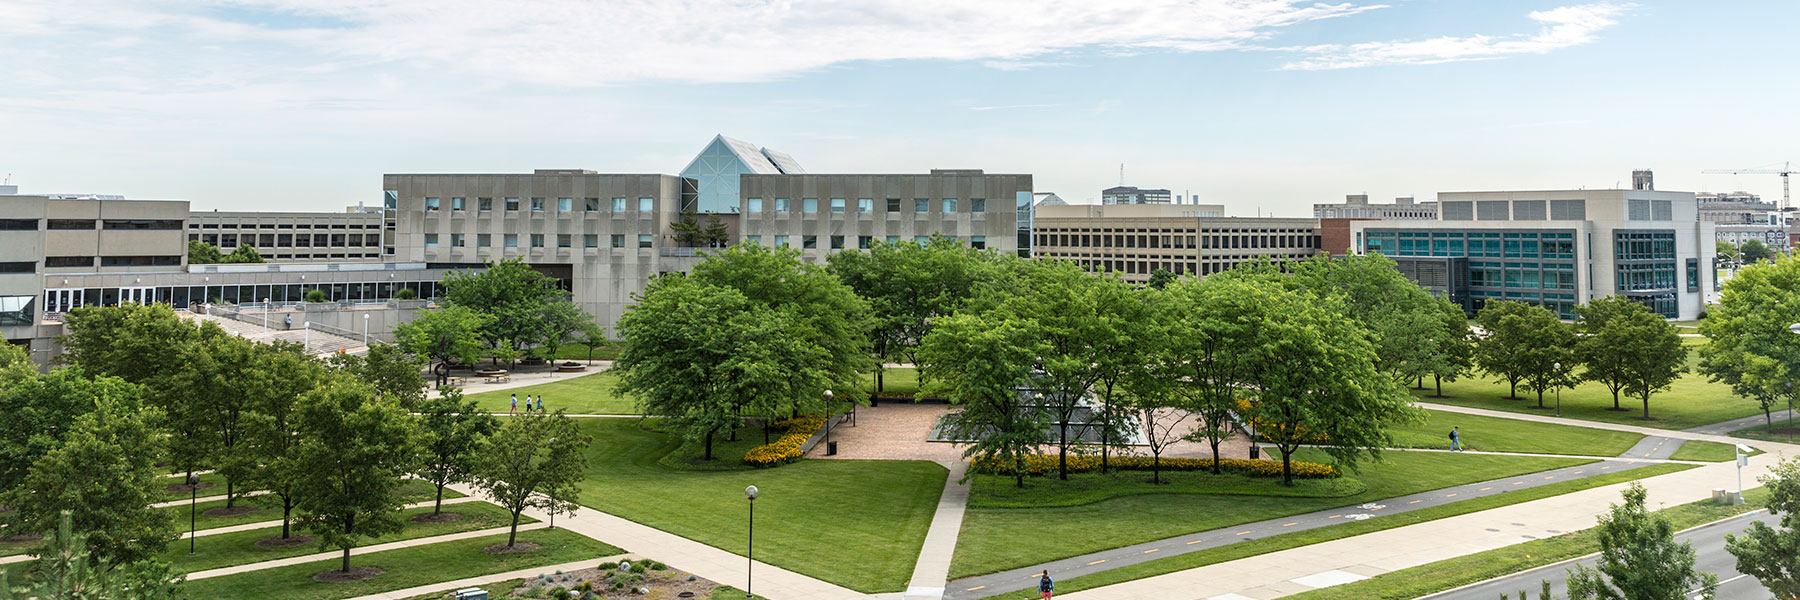 Visit Indianapolis School Admissions University Indiana Business Of Programs Undergraduate University–purdue Campus Kelley